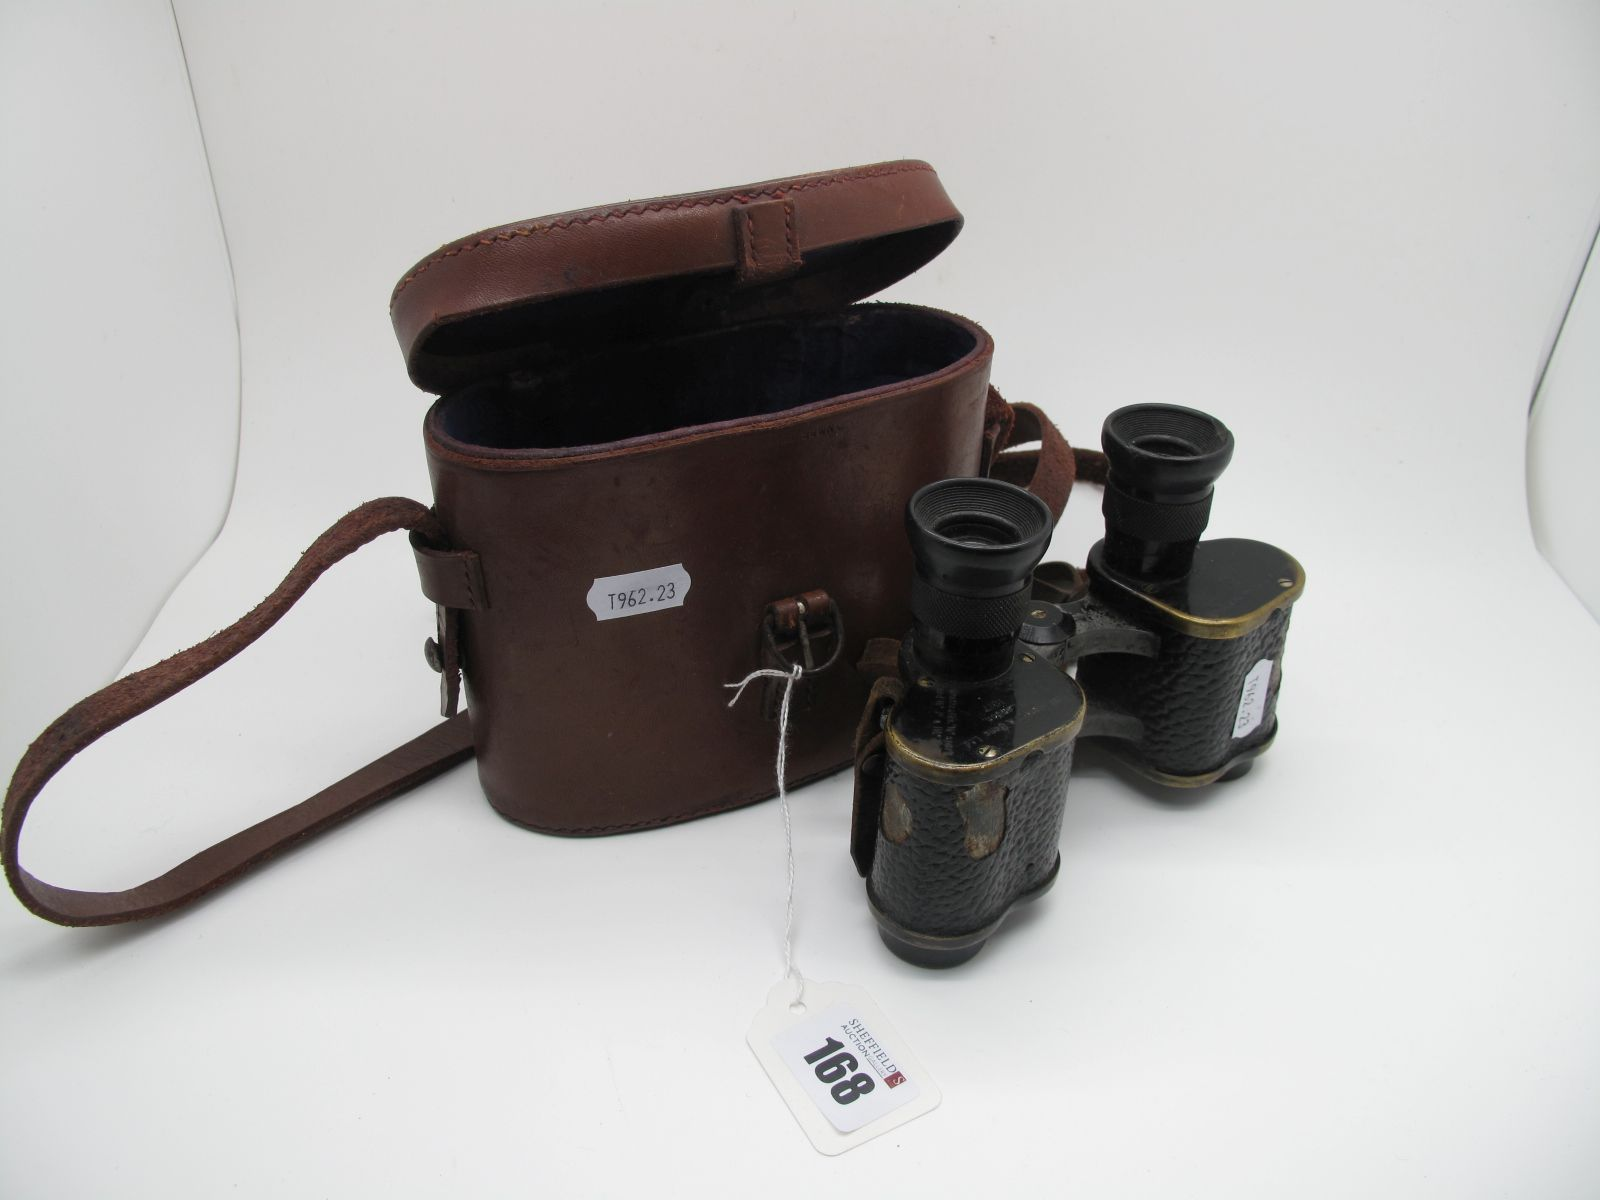 A WWI Era Pair British Military Binoculars, by W Withen? of London, worn in unassociated leather